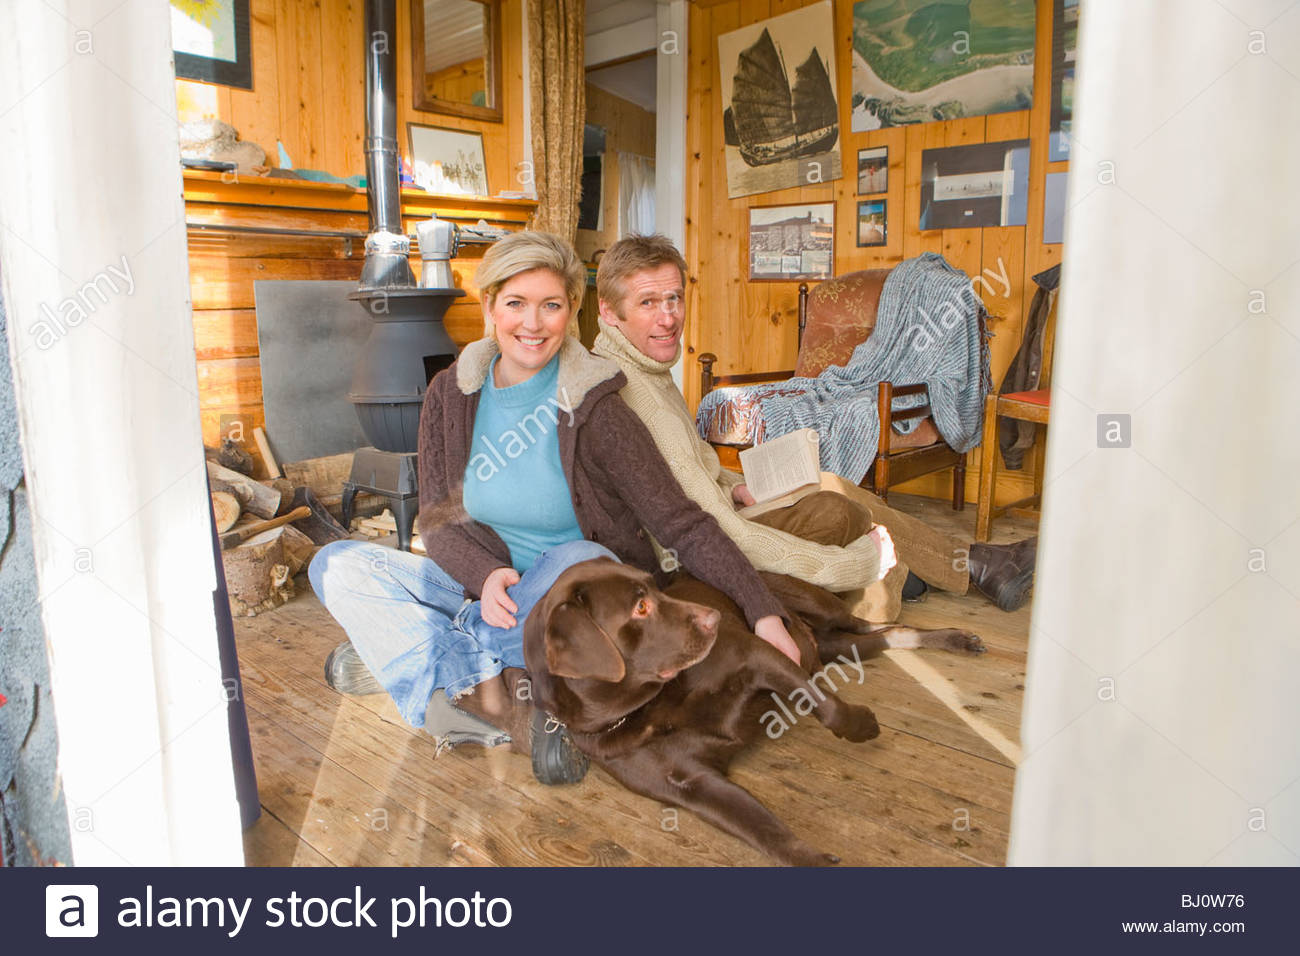 Couple relaxing in living room with pet dog Stock Photo